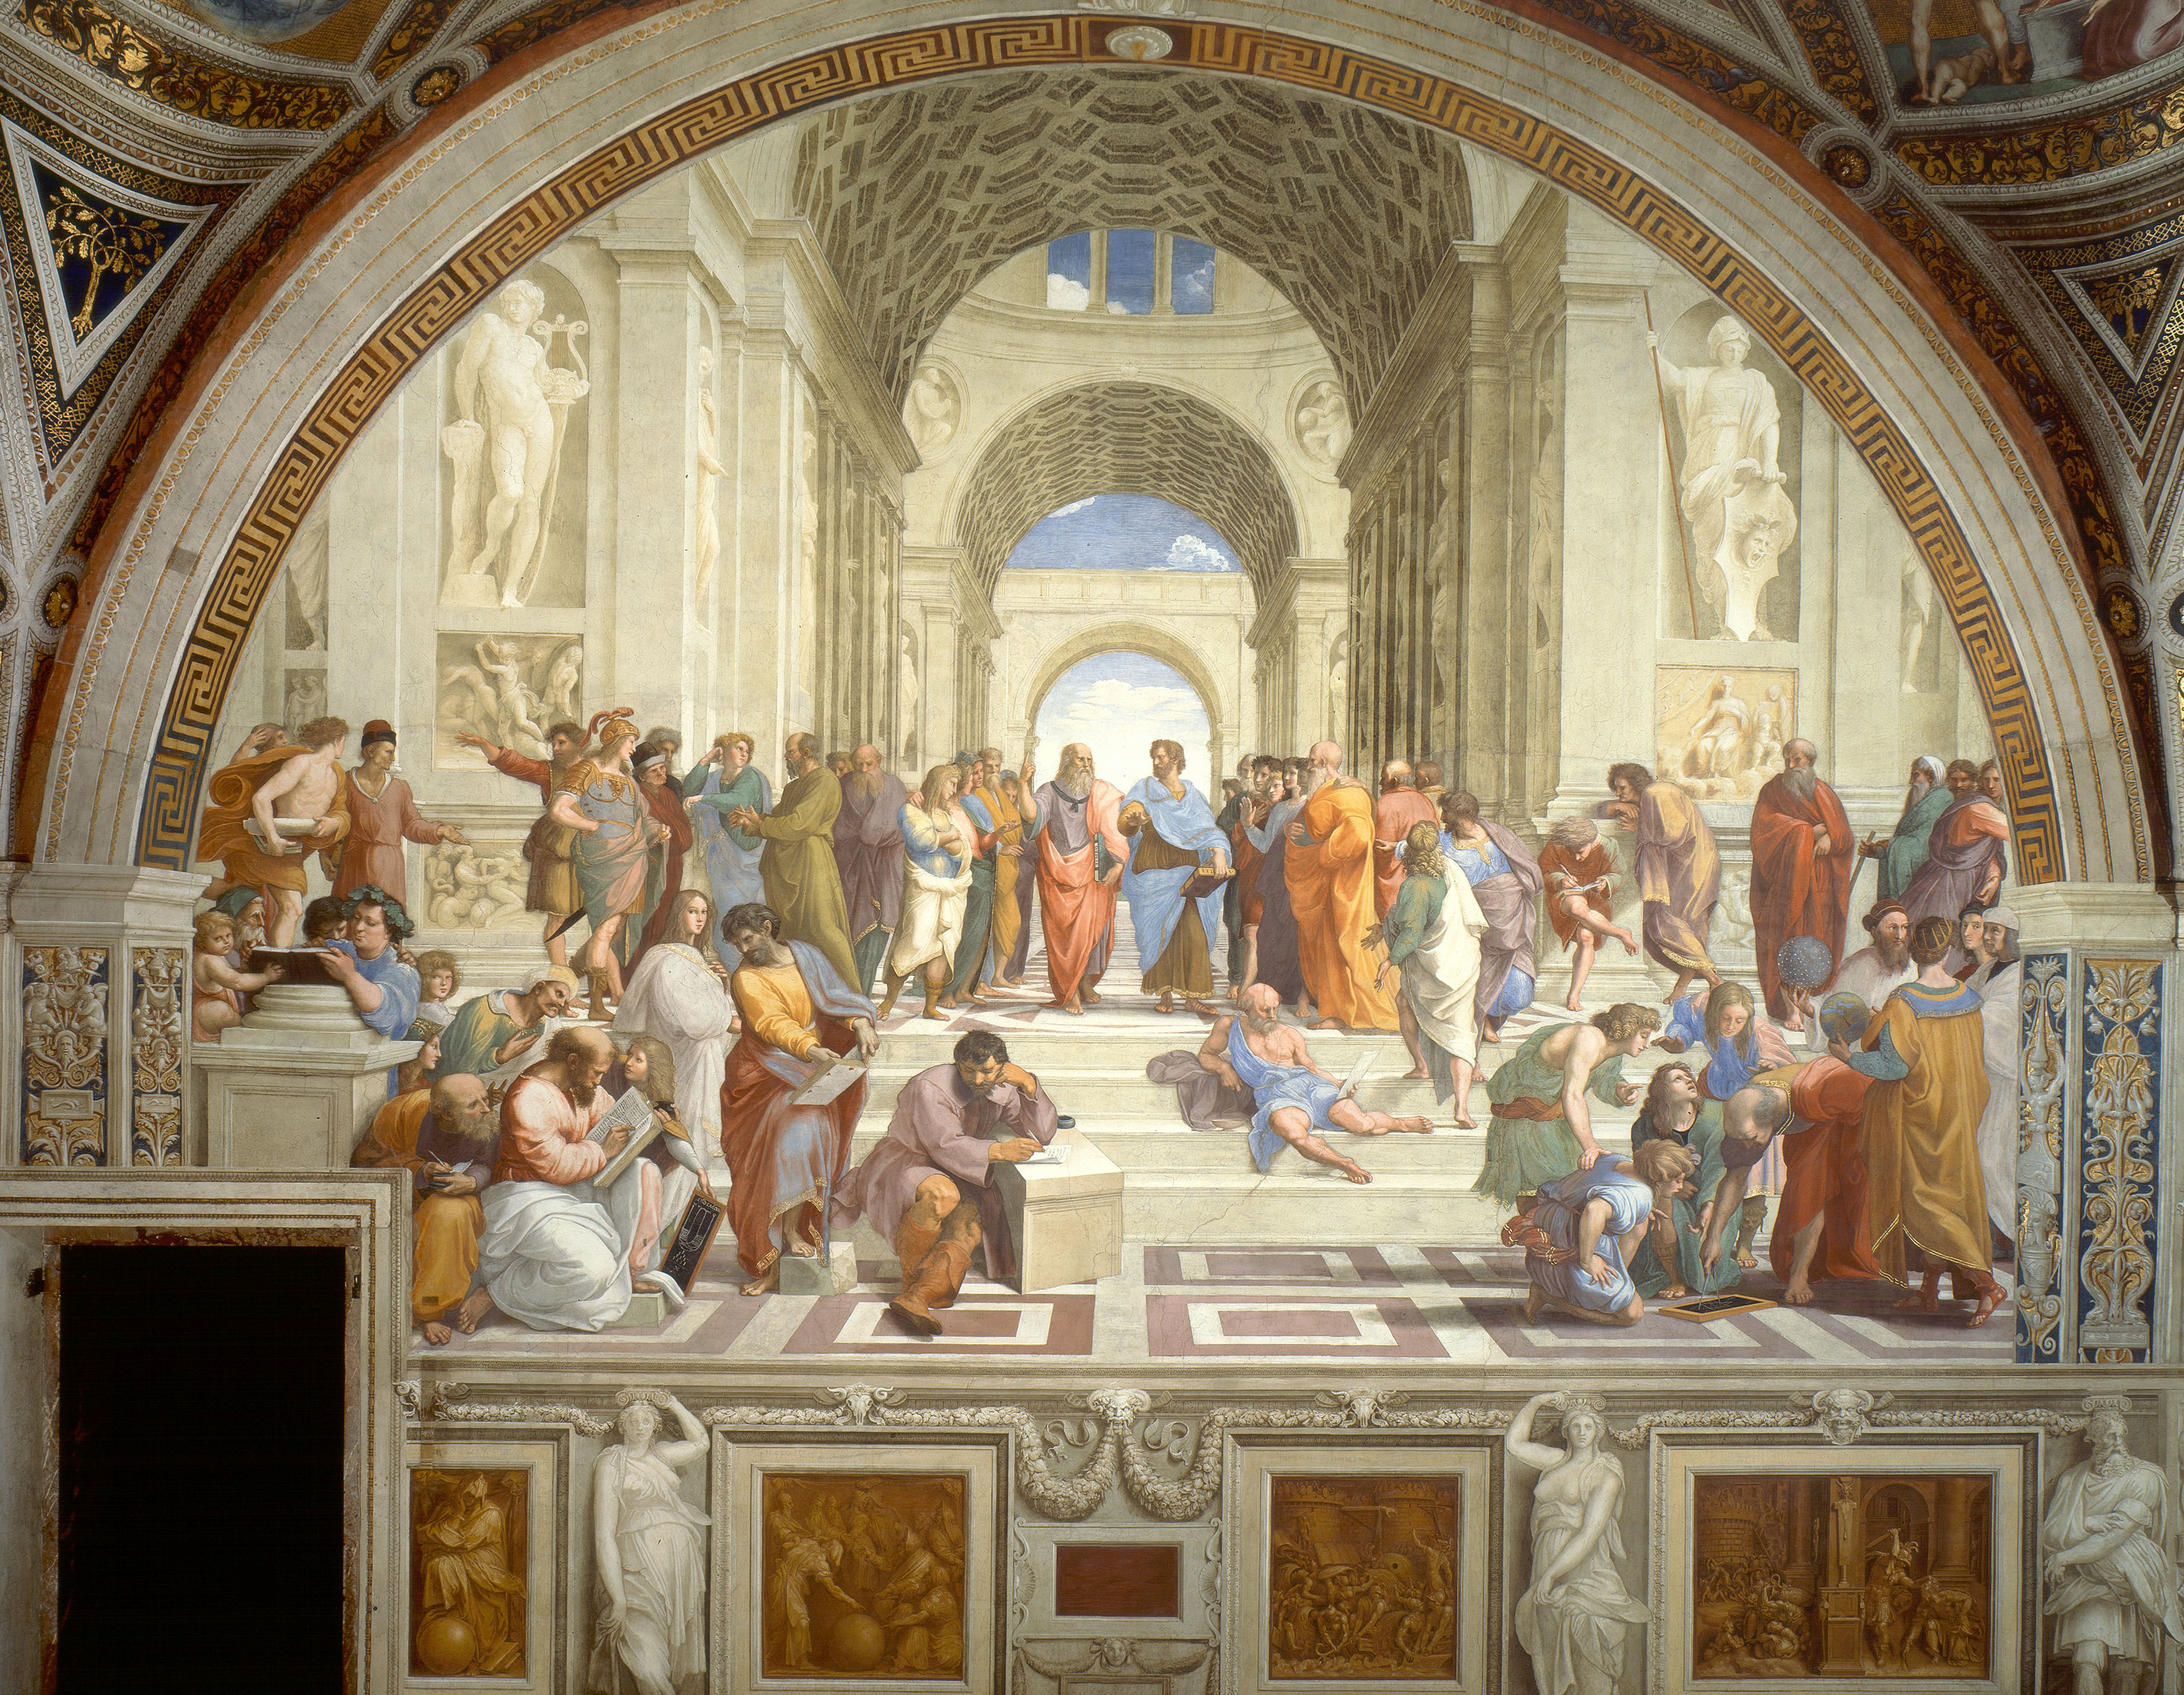 "The School of Athens painted by Raphael in about 1509 typifies what the Renaissance was all about. The humanists looked back on ancient Greece and Rome as a time of cultural advancement and artistic achievement—and they wanted to bring the ""light"" of those times into their own age. With the ancient Greek philosophers Plato and Aristotle at the center of the action, the School of Athens pictures numerous philosophers reading, writing, listening, and discussing. This demonstrates some key beliefs of the Renaissance humanists—that society should pursue knowledge and education, that ideas both old and new are worthwhile and exciting, and that public debate is important.  (Image via Wikipedia)"